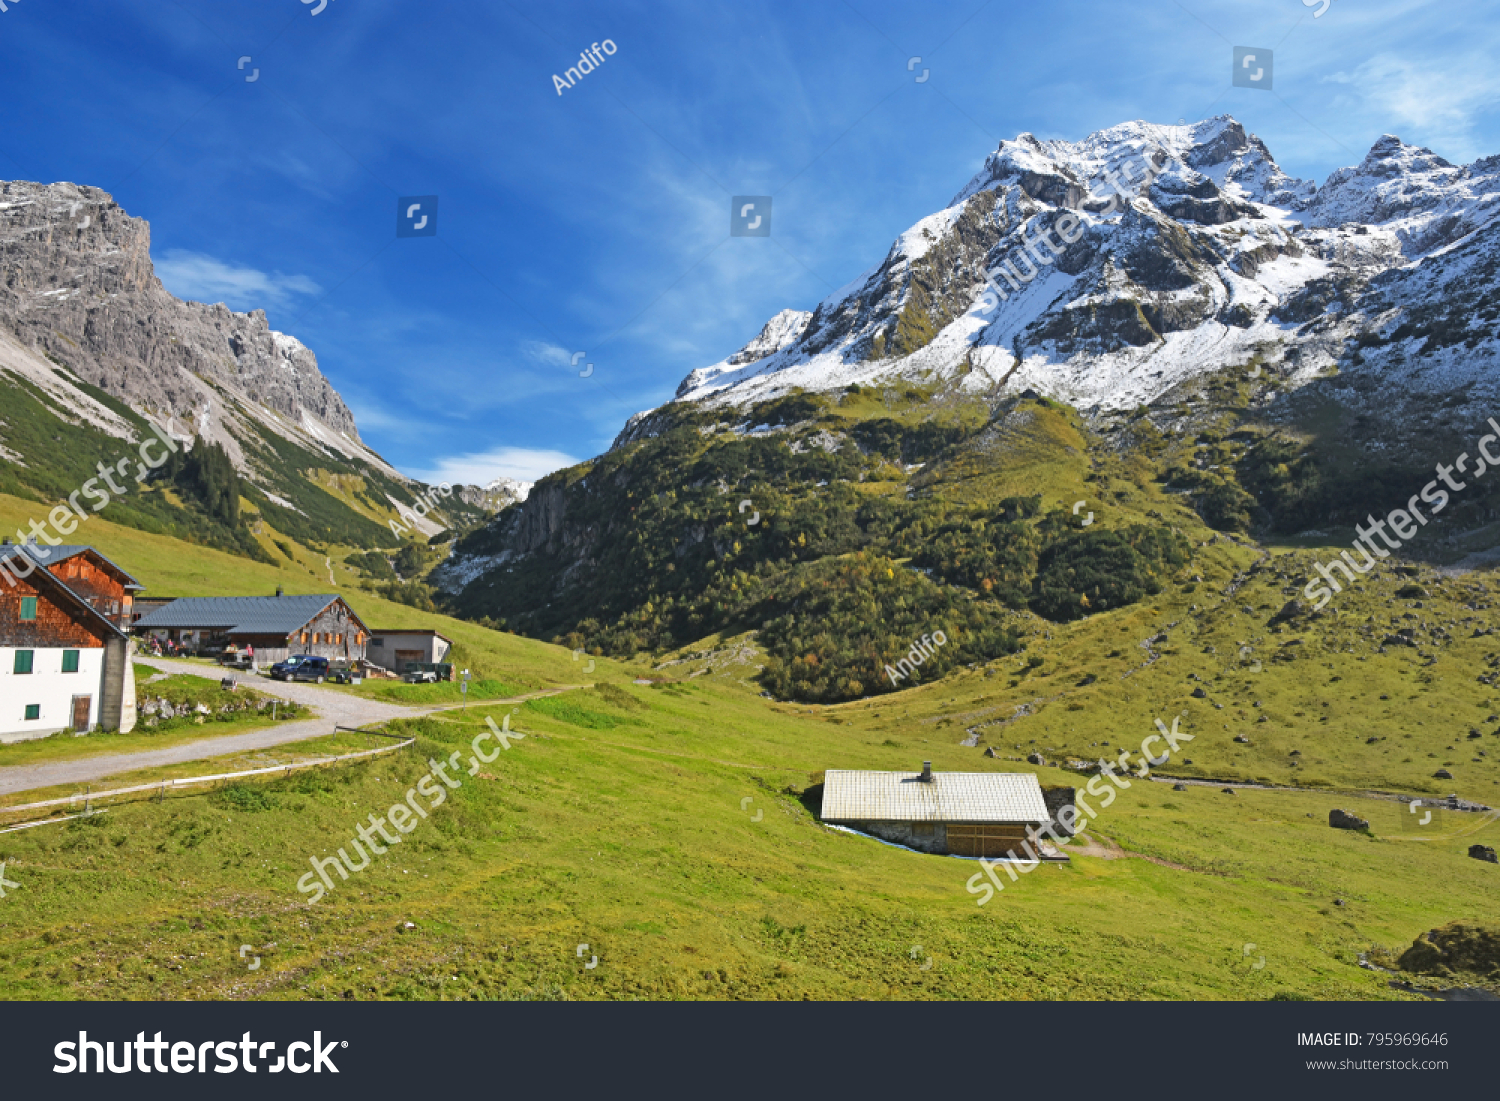 Rote Wand Alp Klesenza Rote Wand Beautiful Day Stock Photo Edit Now